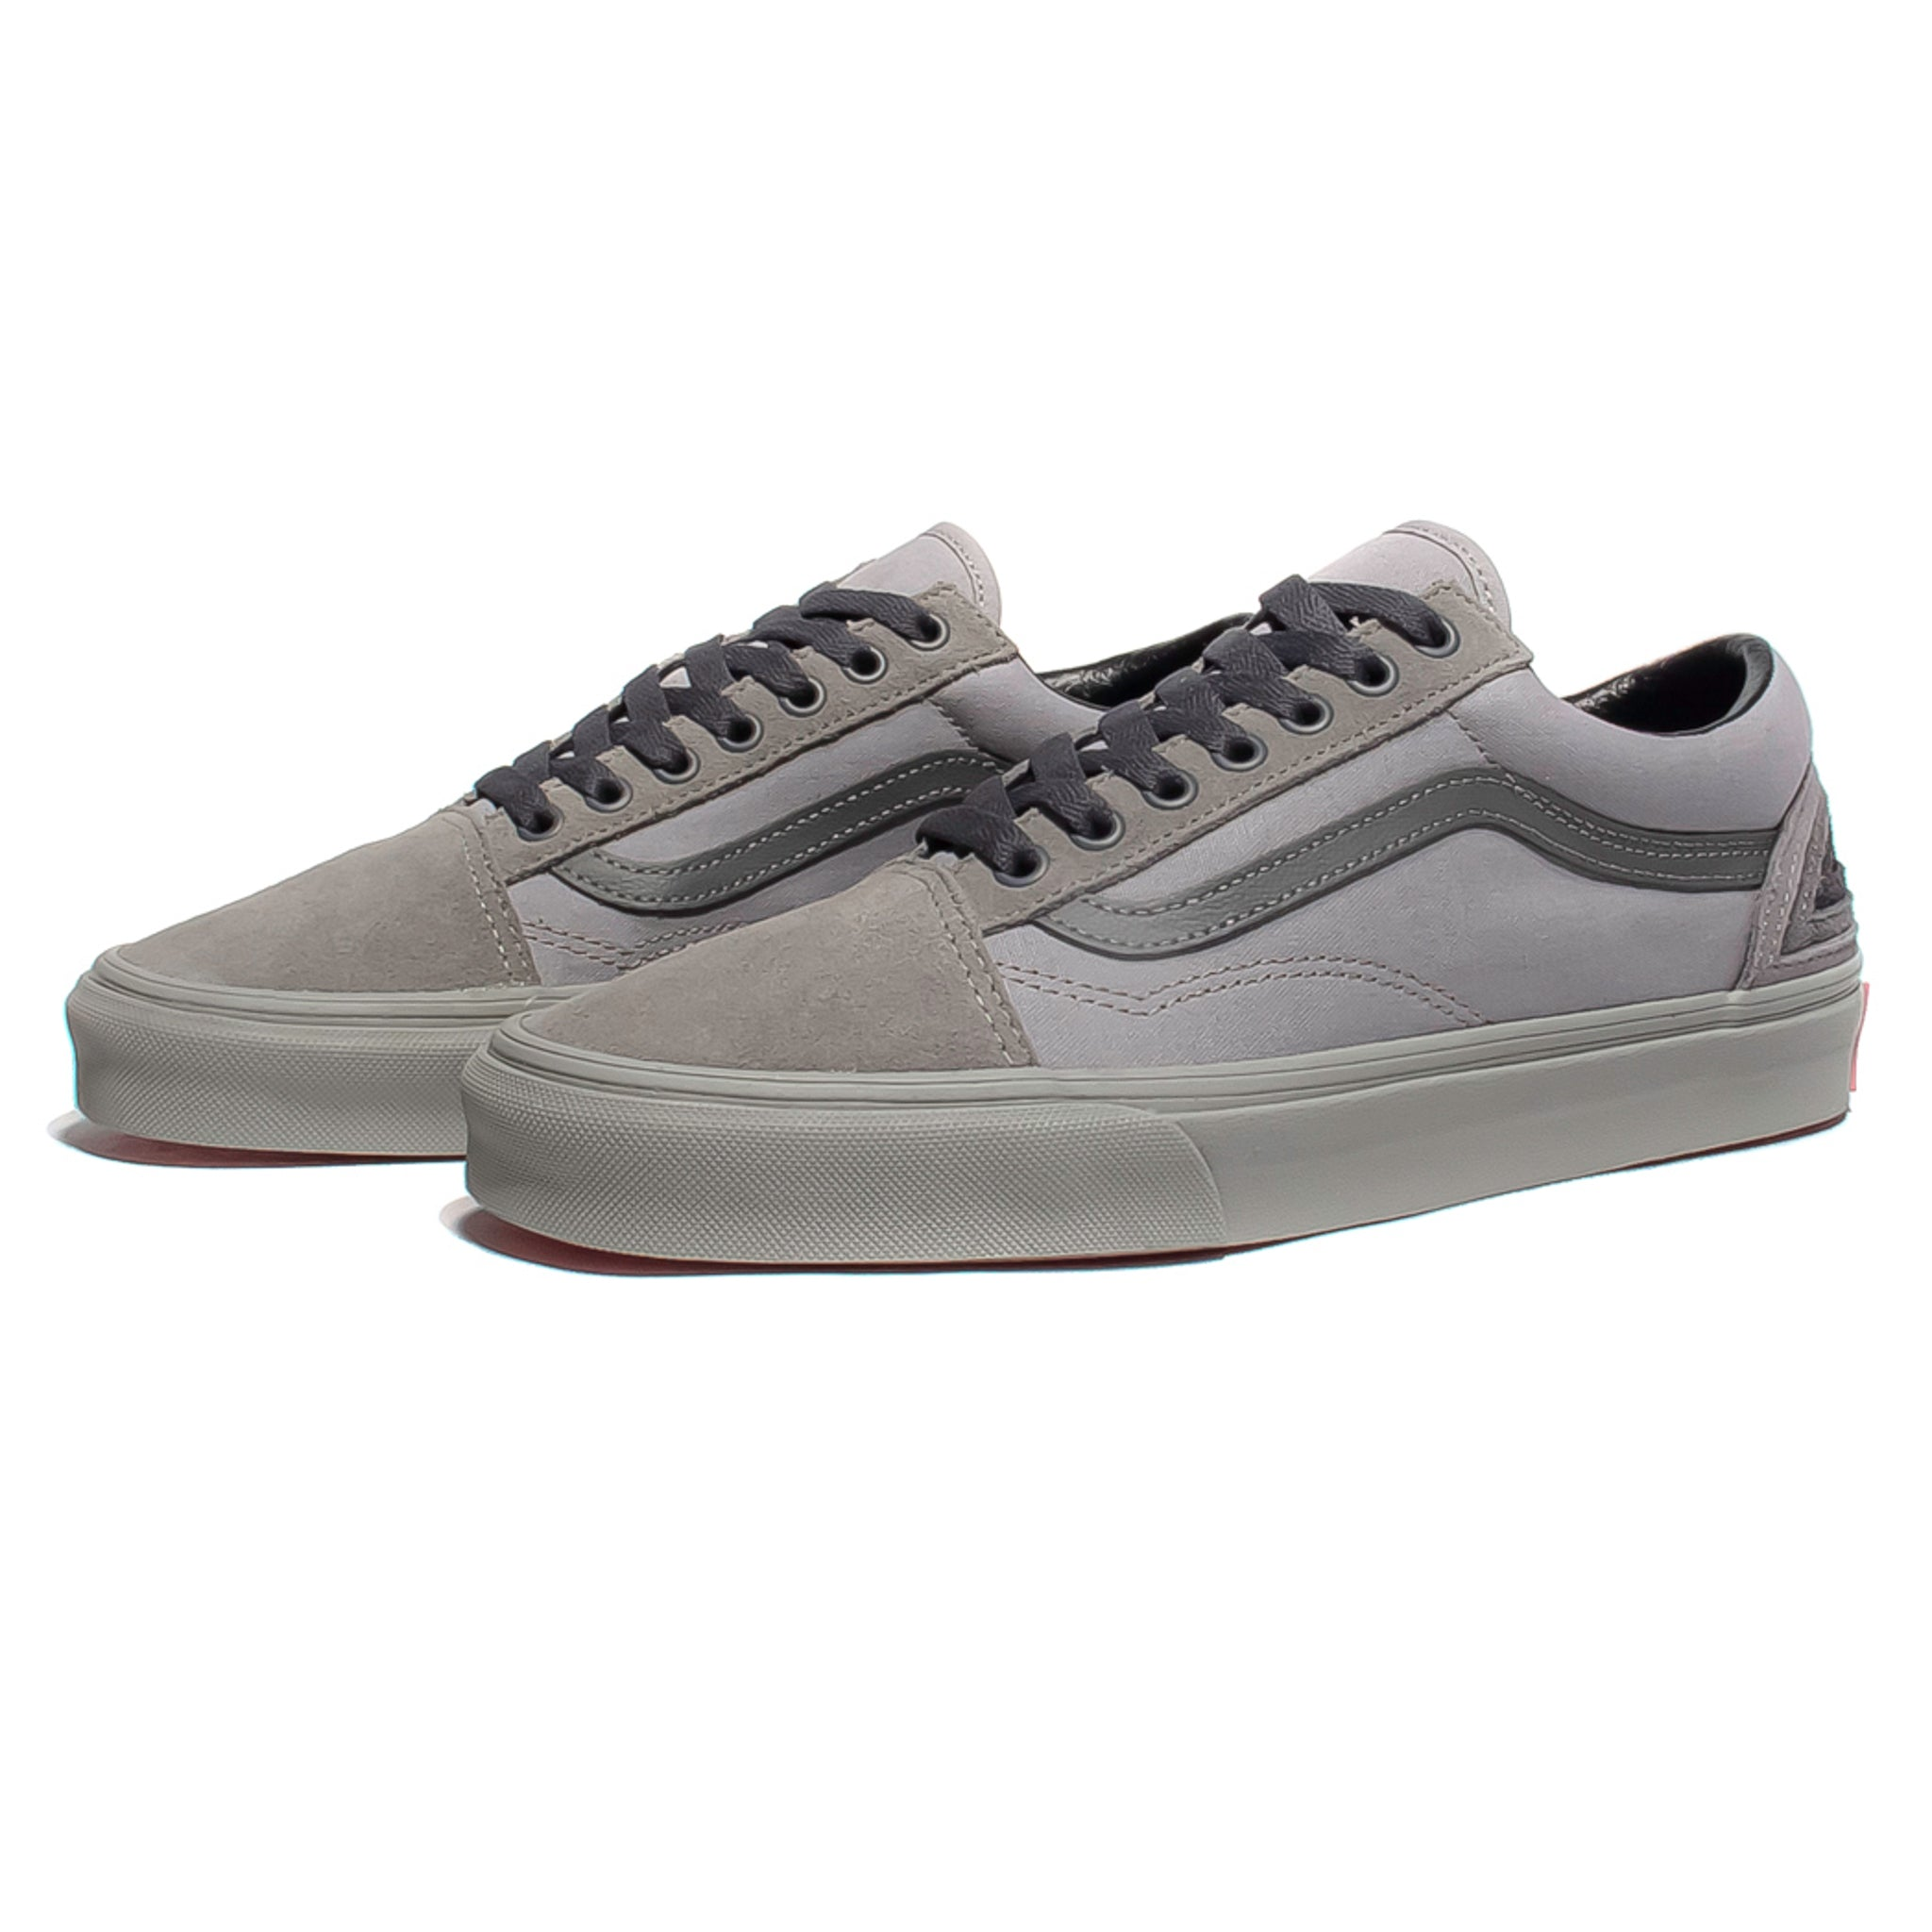 Vans Vault Old Skool Year of the Rat